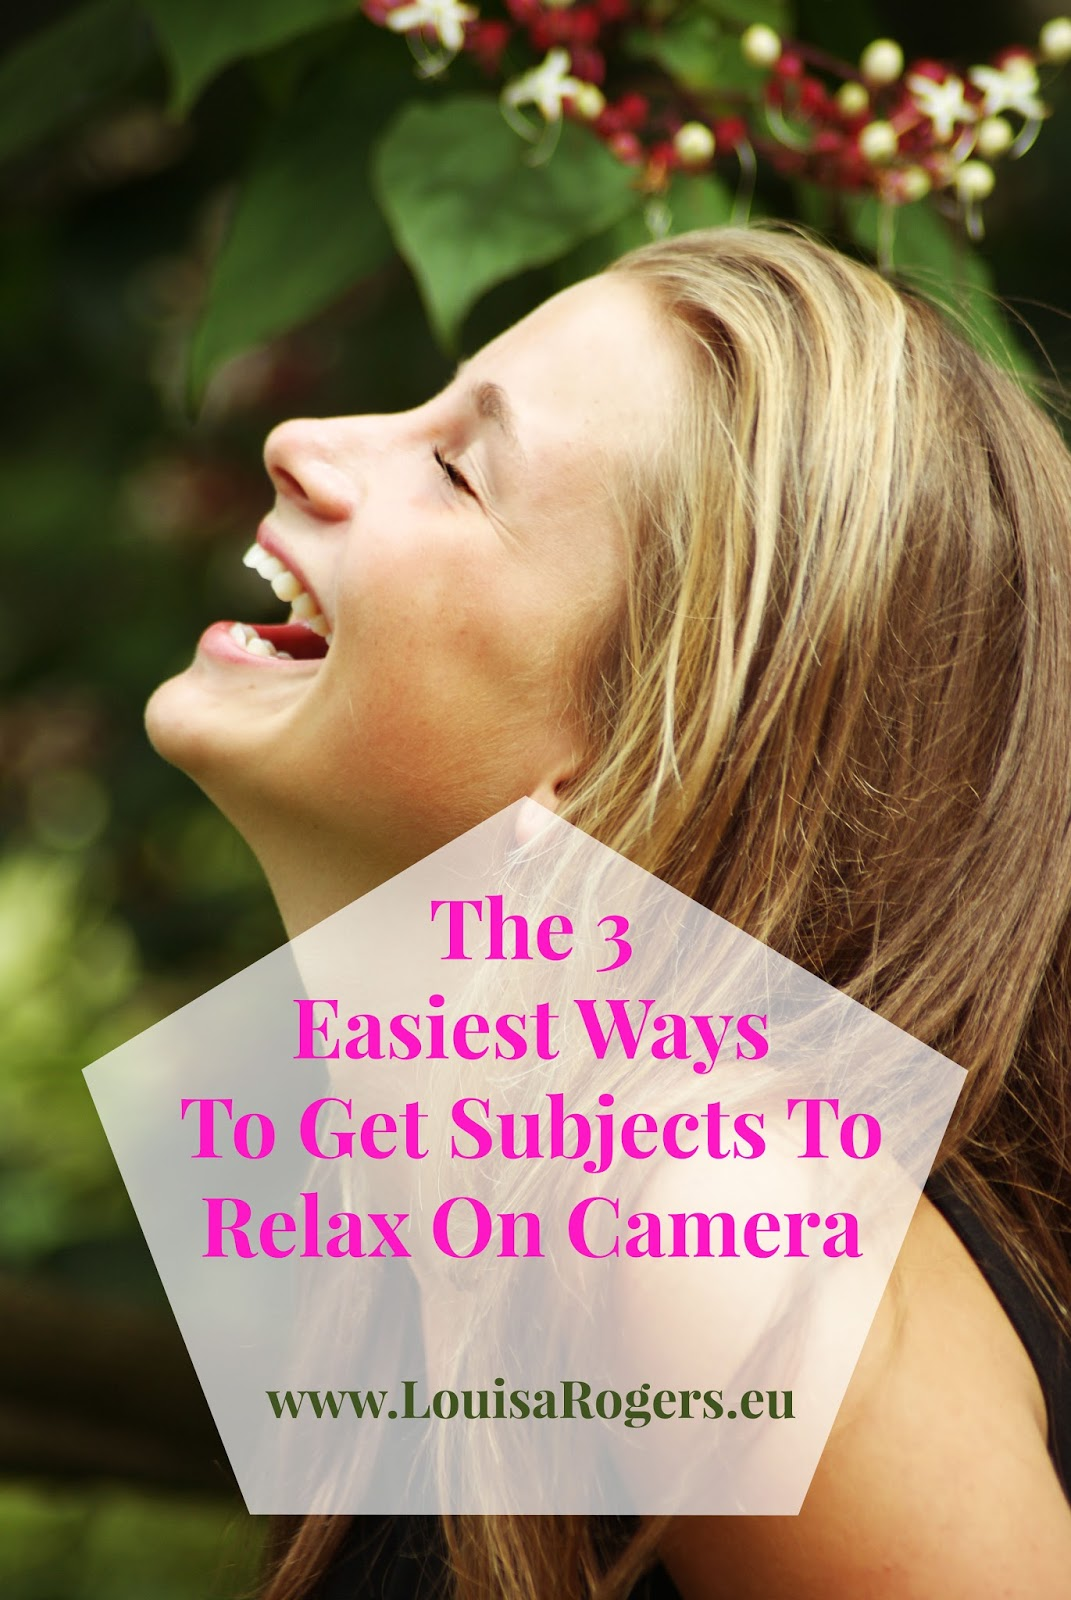 The 3 Easiest Ways To Get Subject To Relax On Camera